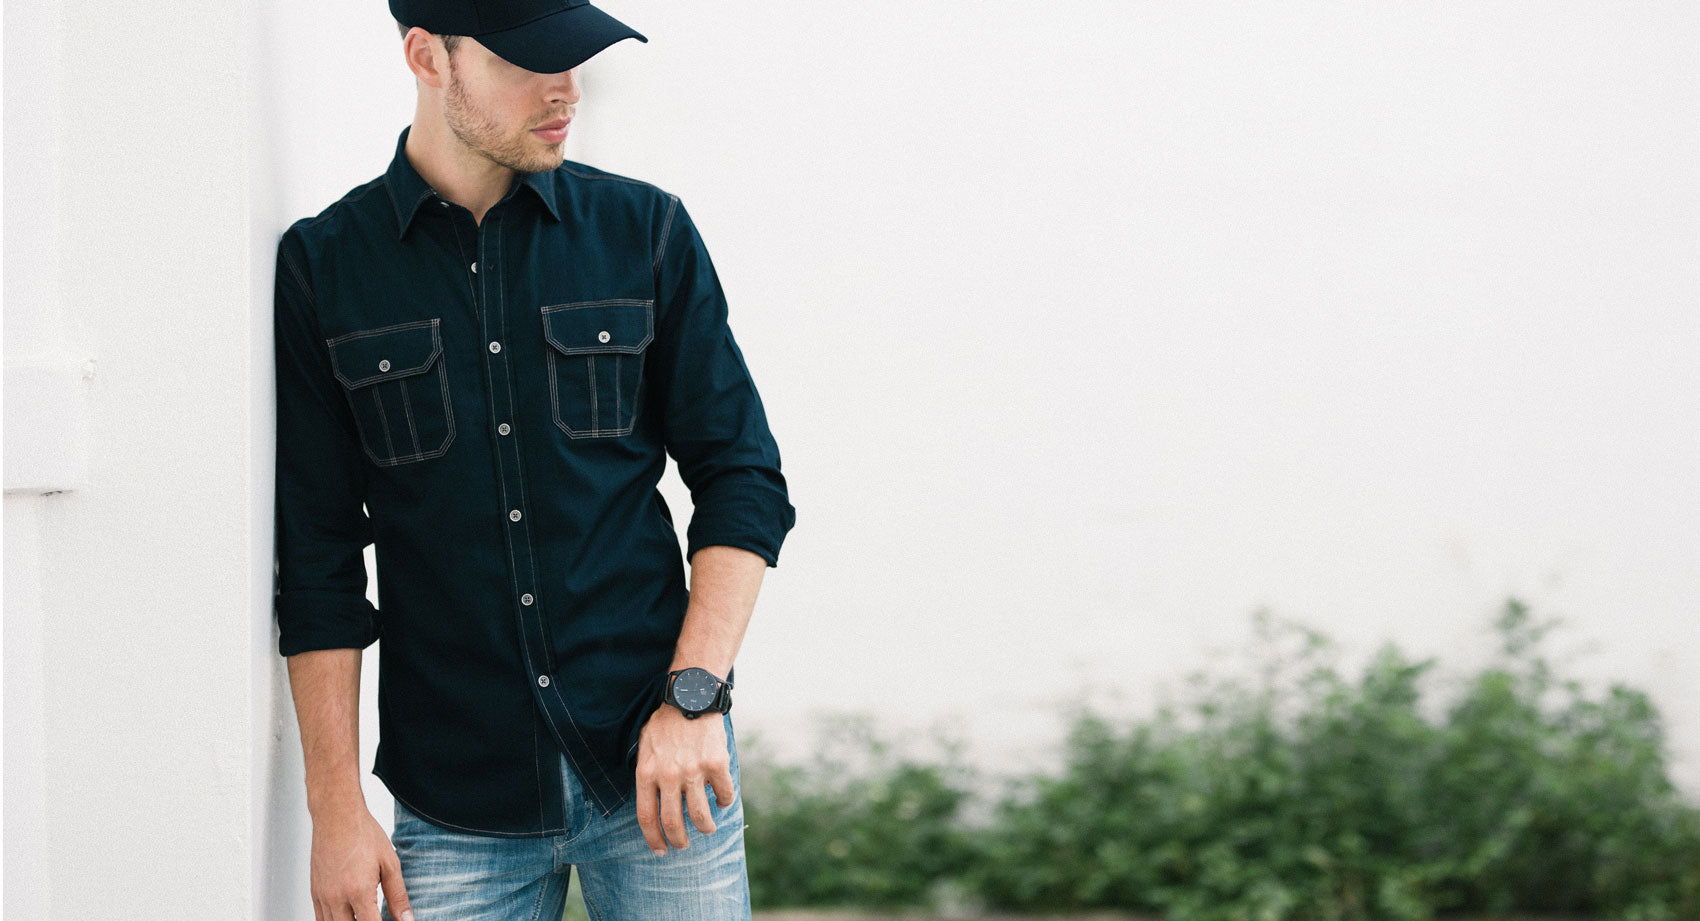 Constructor Men's Utility Shirt in navy twill